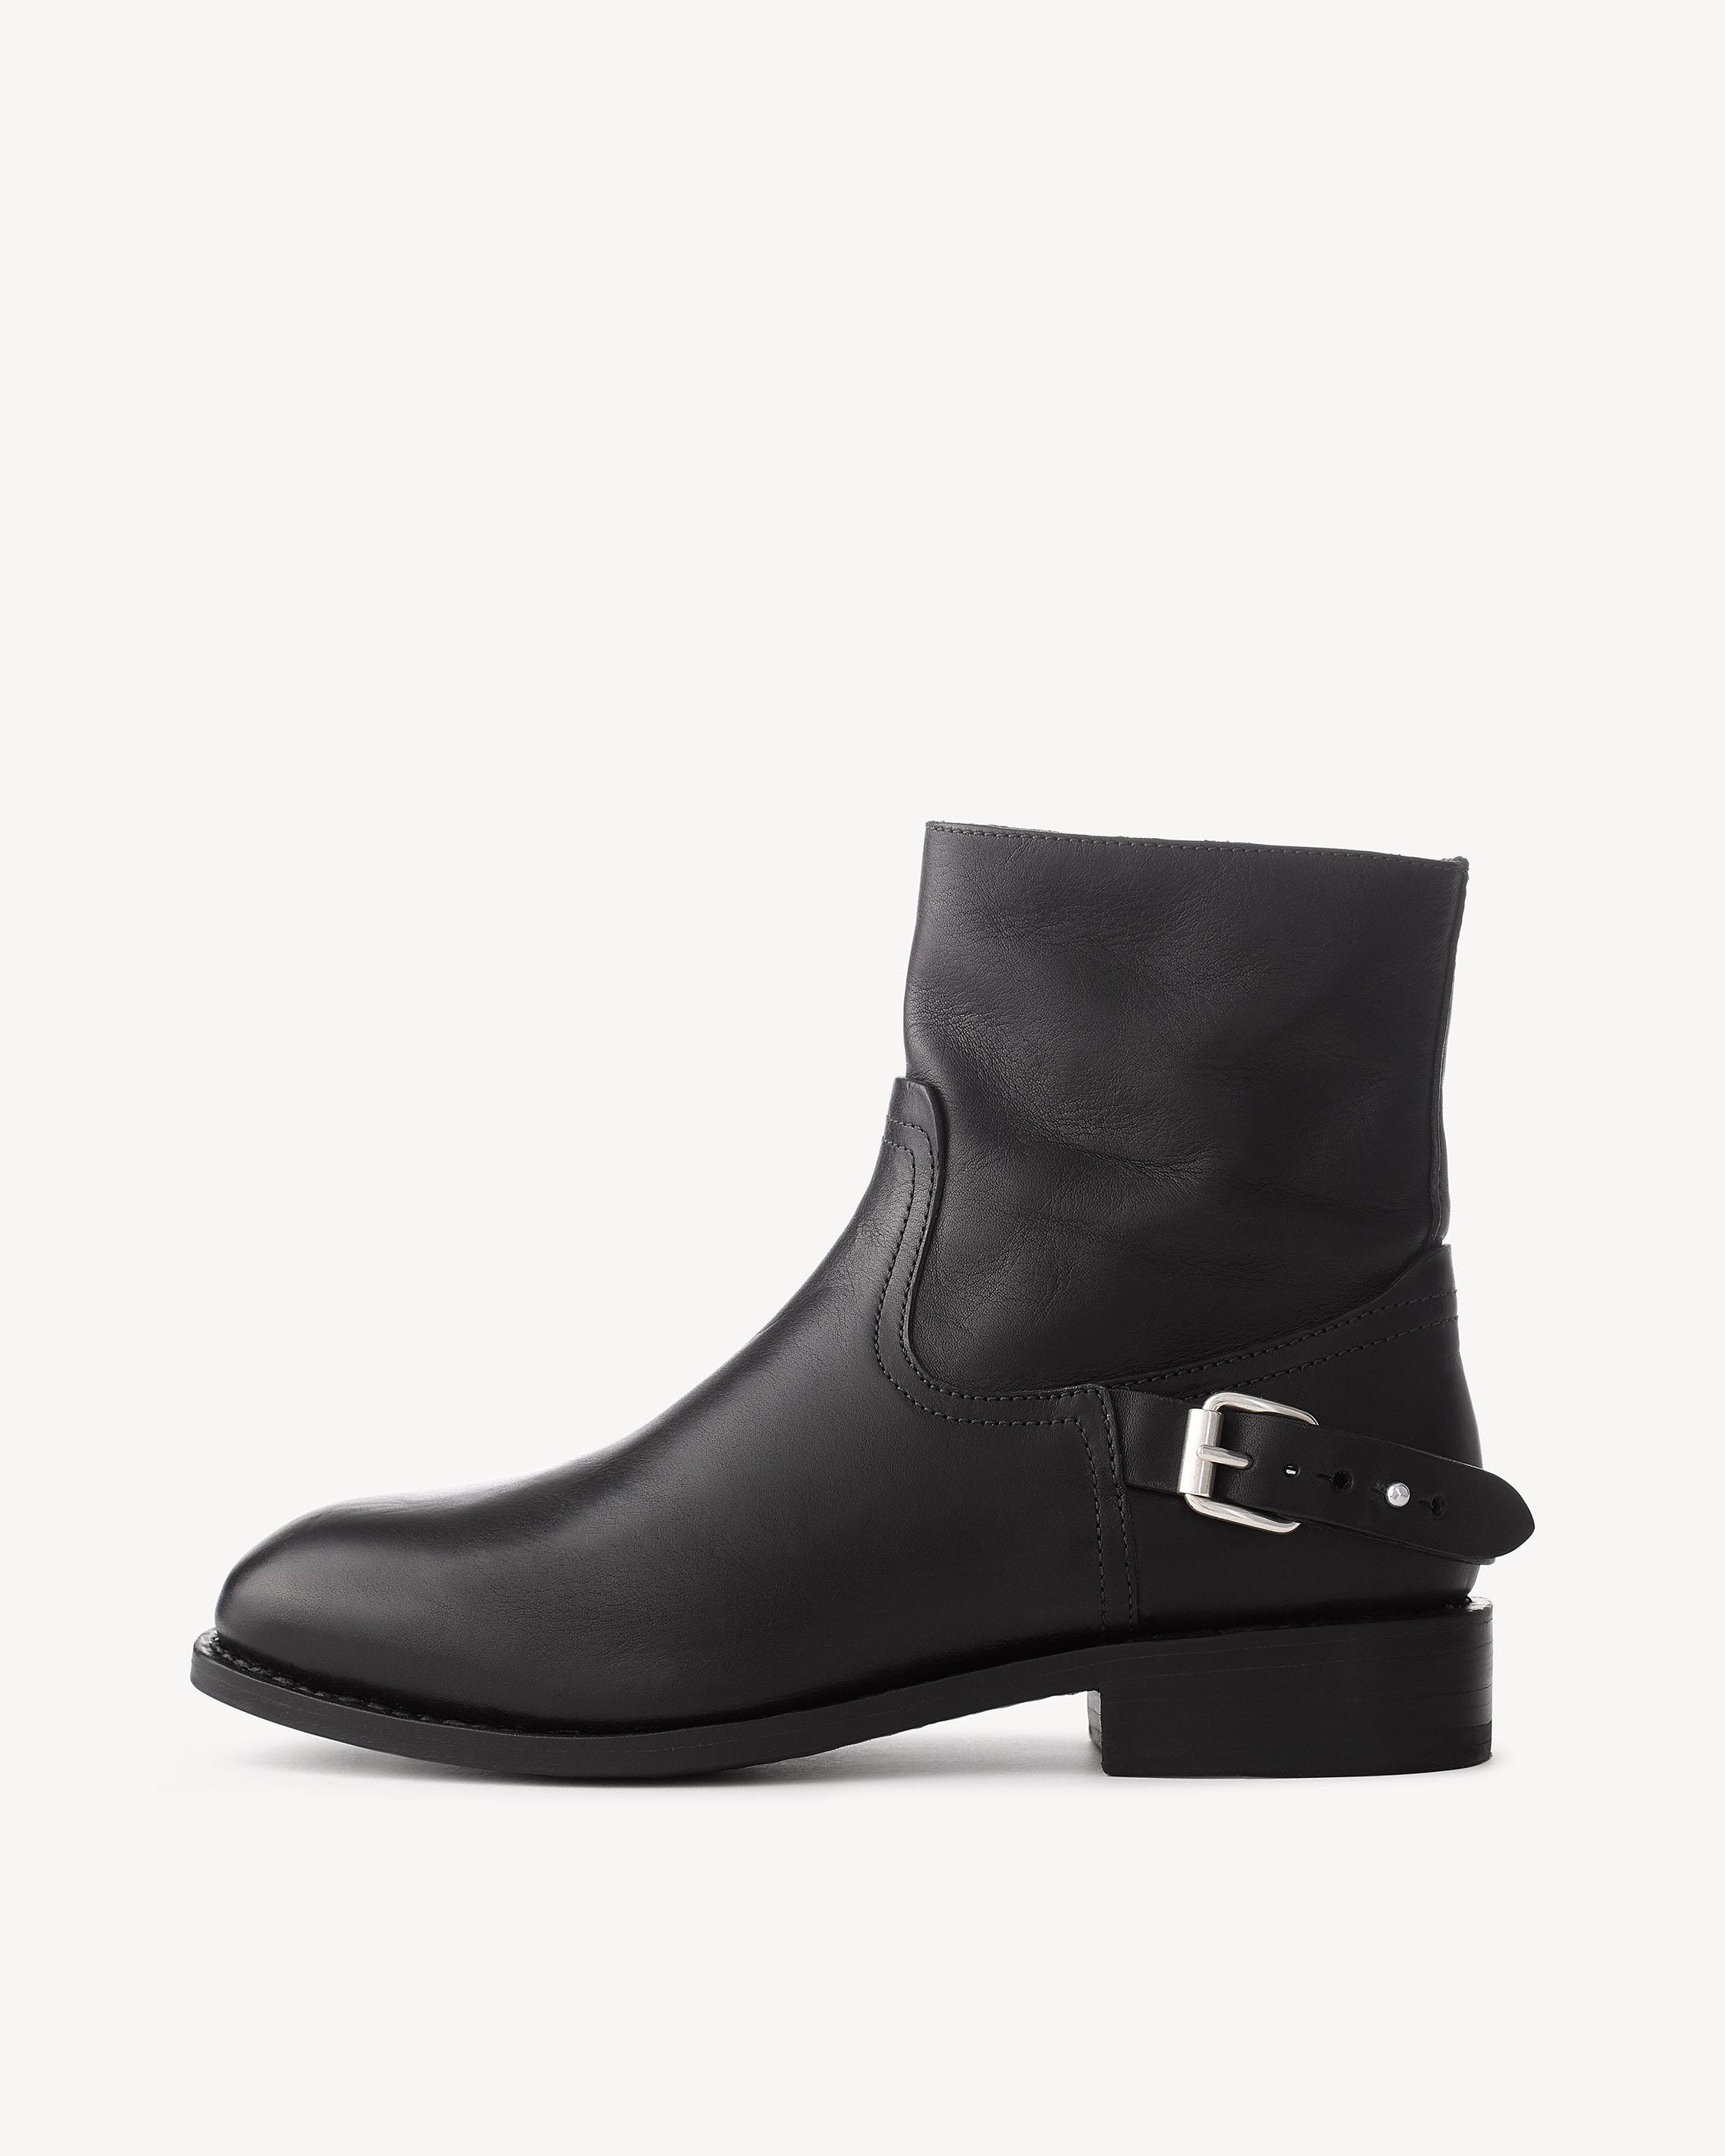 Black Oliver Zip Boots Rag & Bone Cheap Sale Pictures Buy Cheap Best Seller kkSsNuFCW